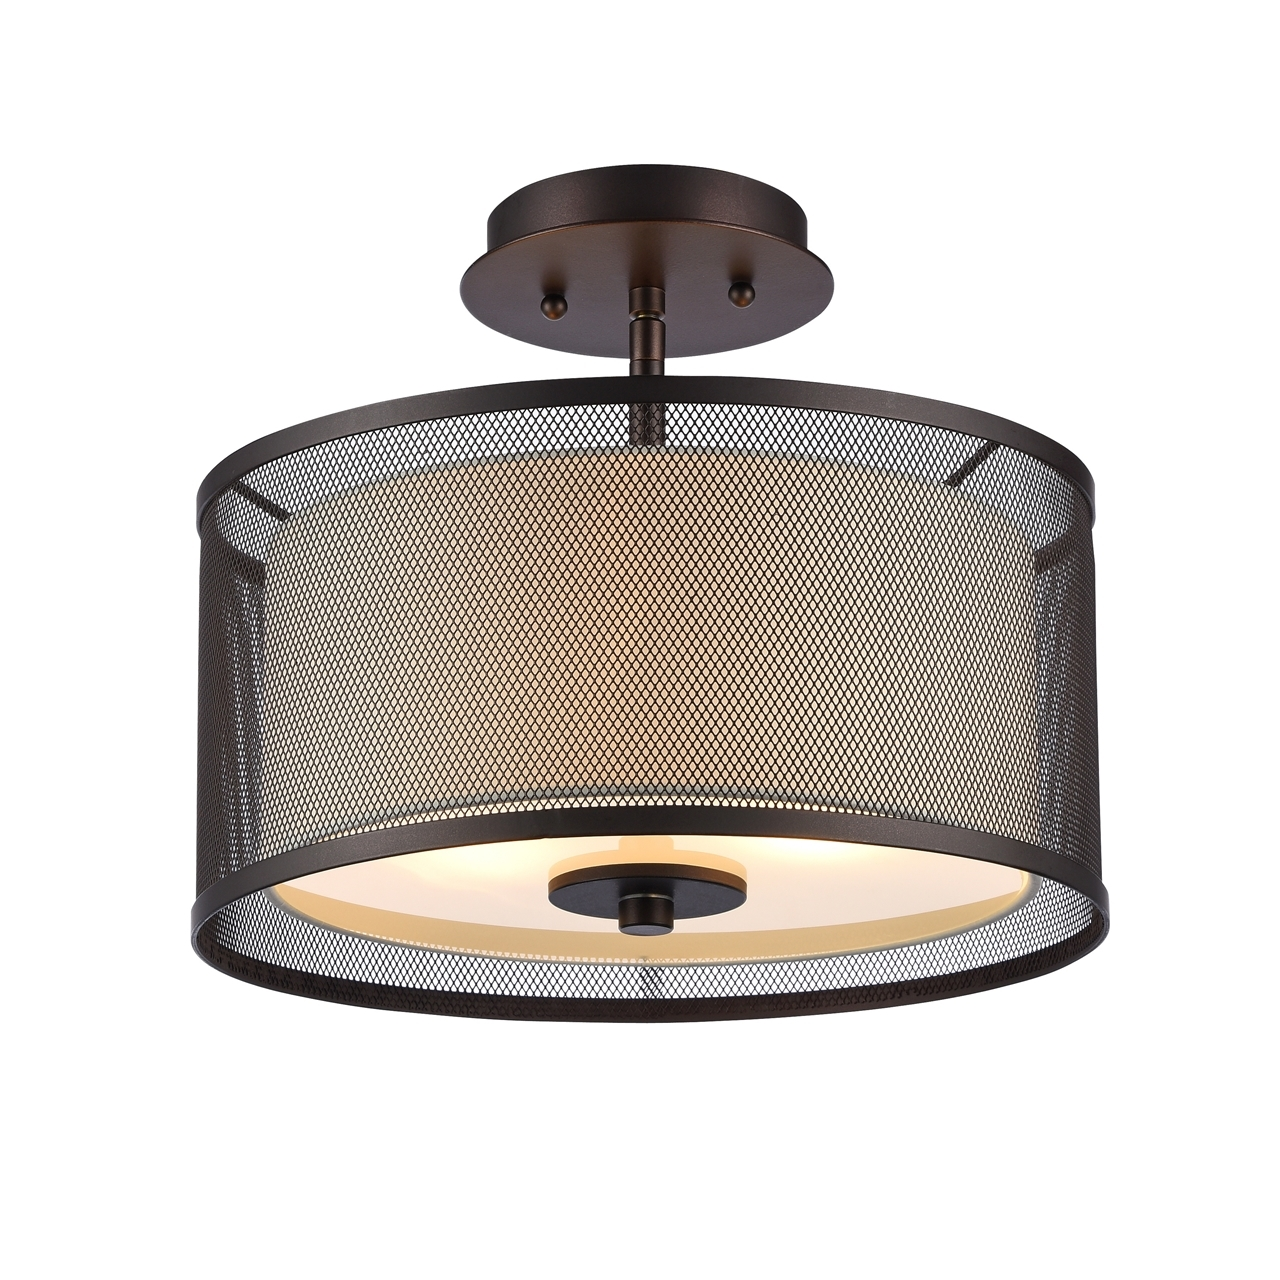 c9c09c8a990 Picture of CH24033RB13-SF2 Semi-flush Ceiling Fixture